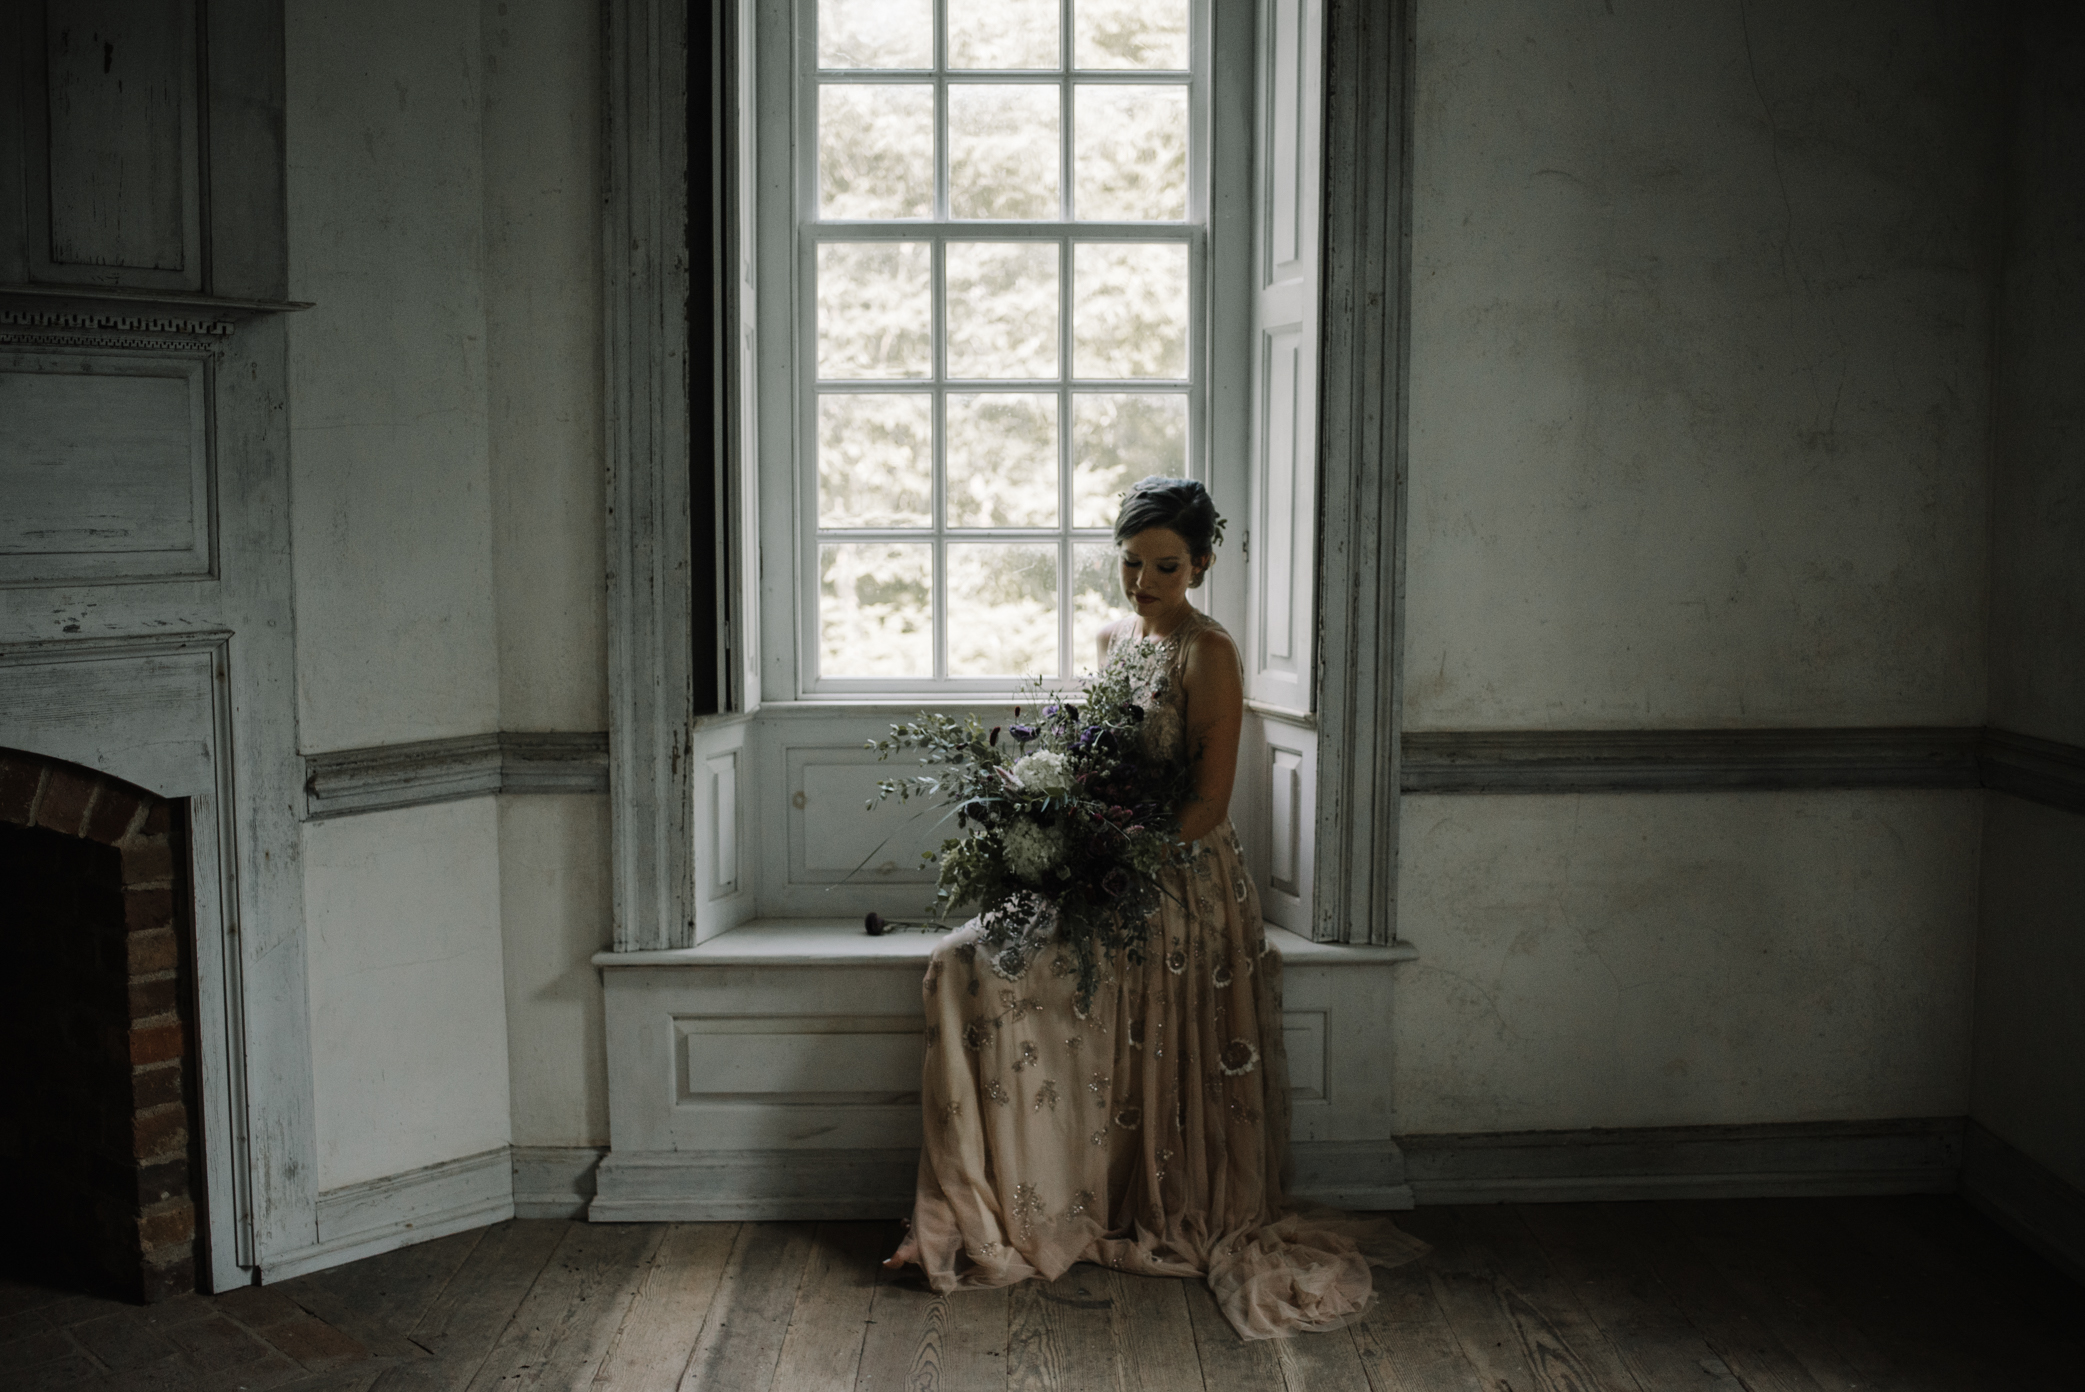 Salubria Historic Manor House Virginia - Moody Scottish Highland Wedding Styled Shoot - White Sails Creative - Sage and Silhouettes - BHLDN - Bijous Sweet Treats_86.JPG